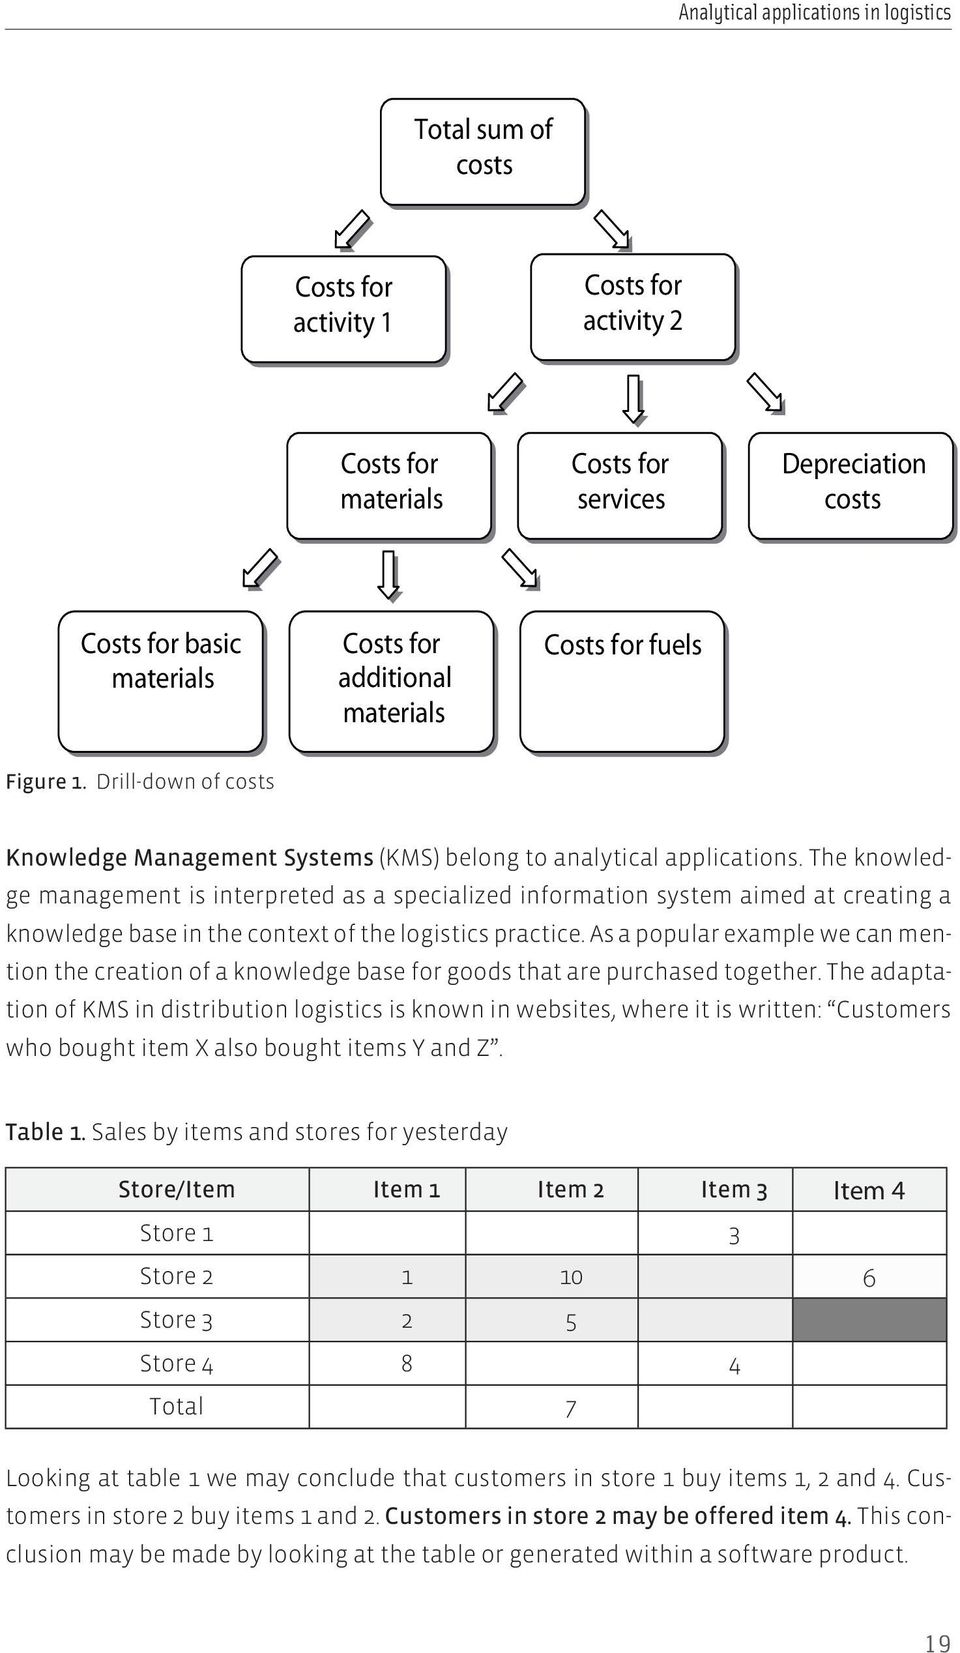 The knowledge management is interpreted as a specialized information system aimed at creating a knowledge base in the context of the logistics practice.